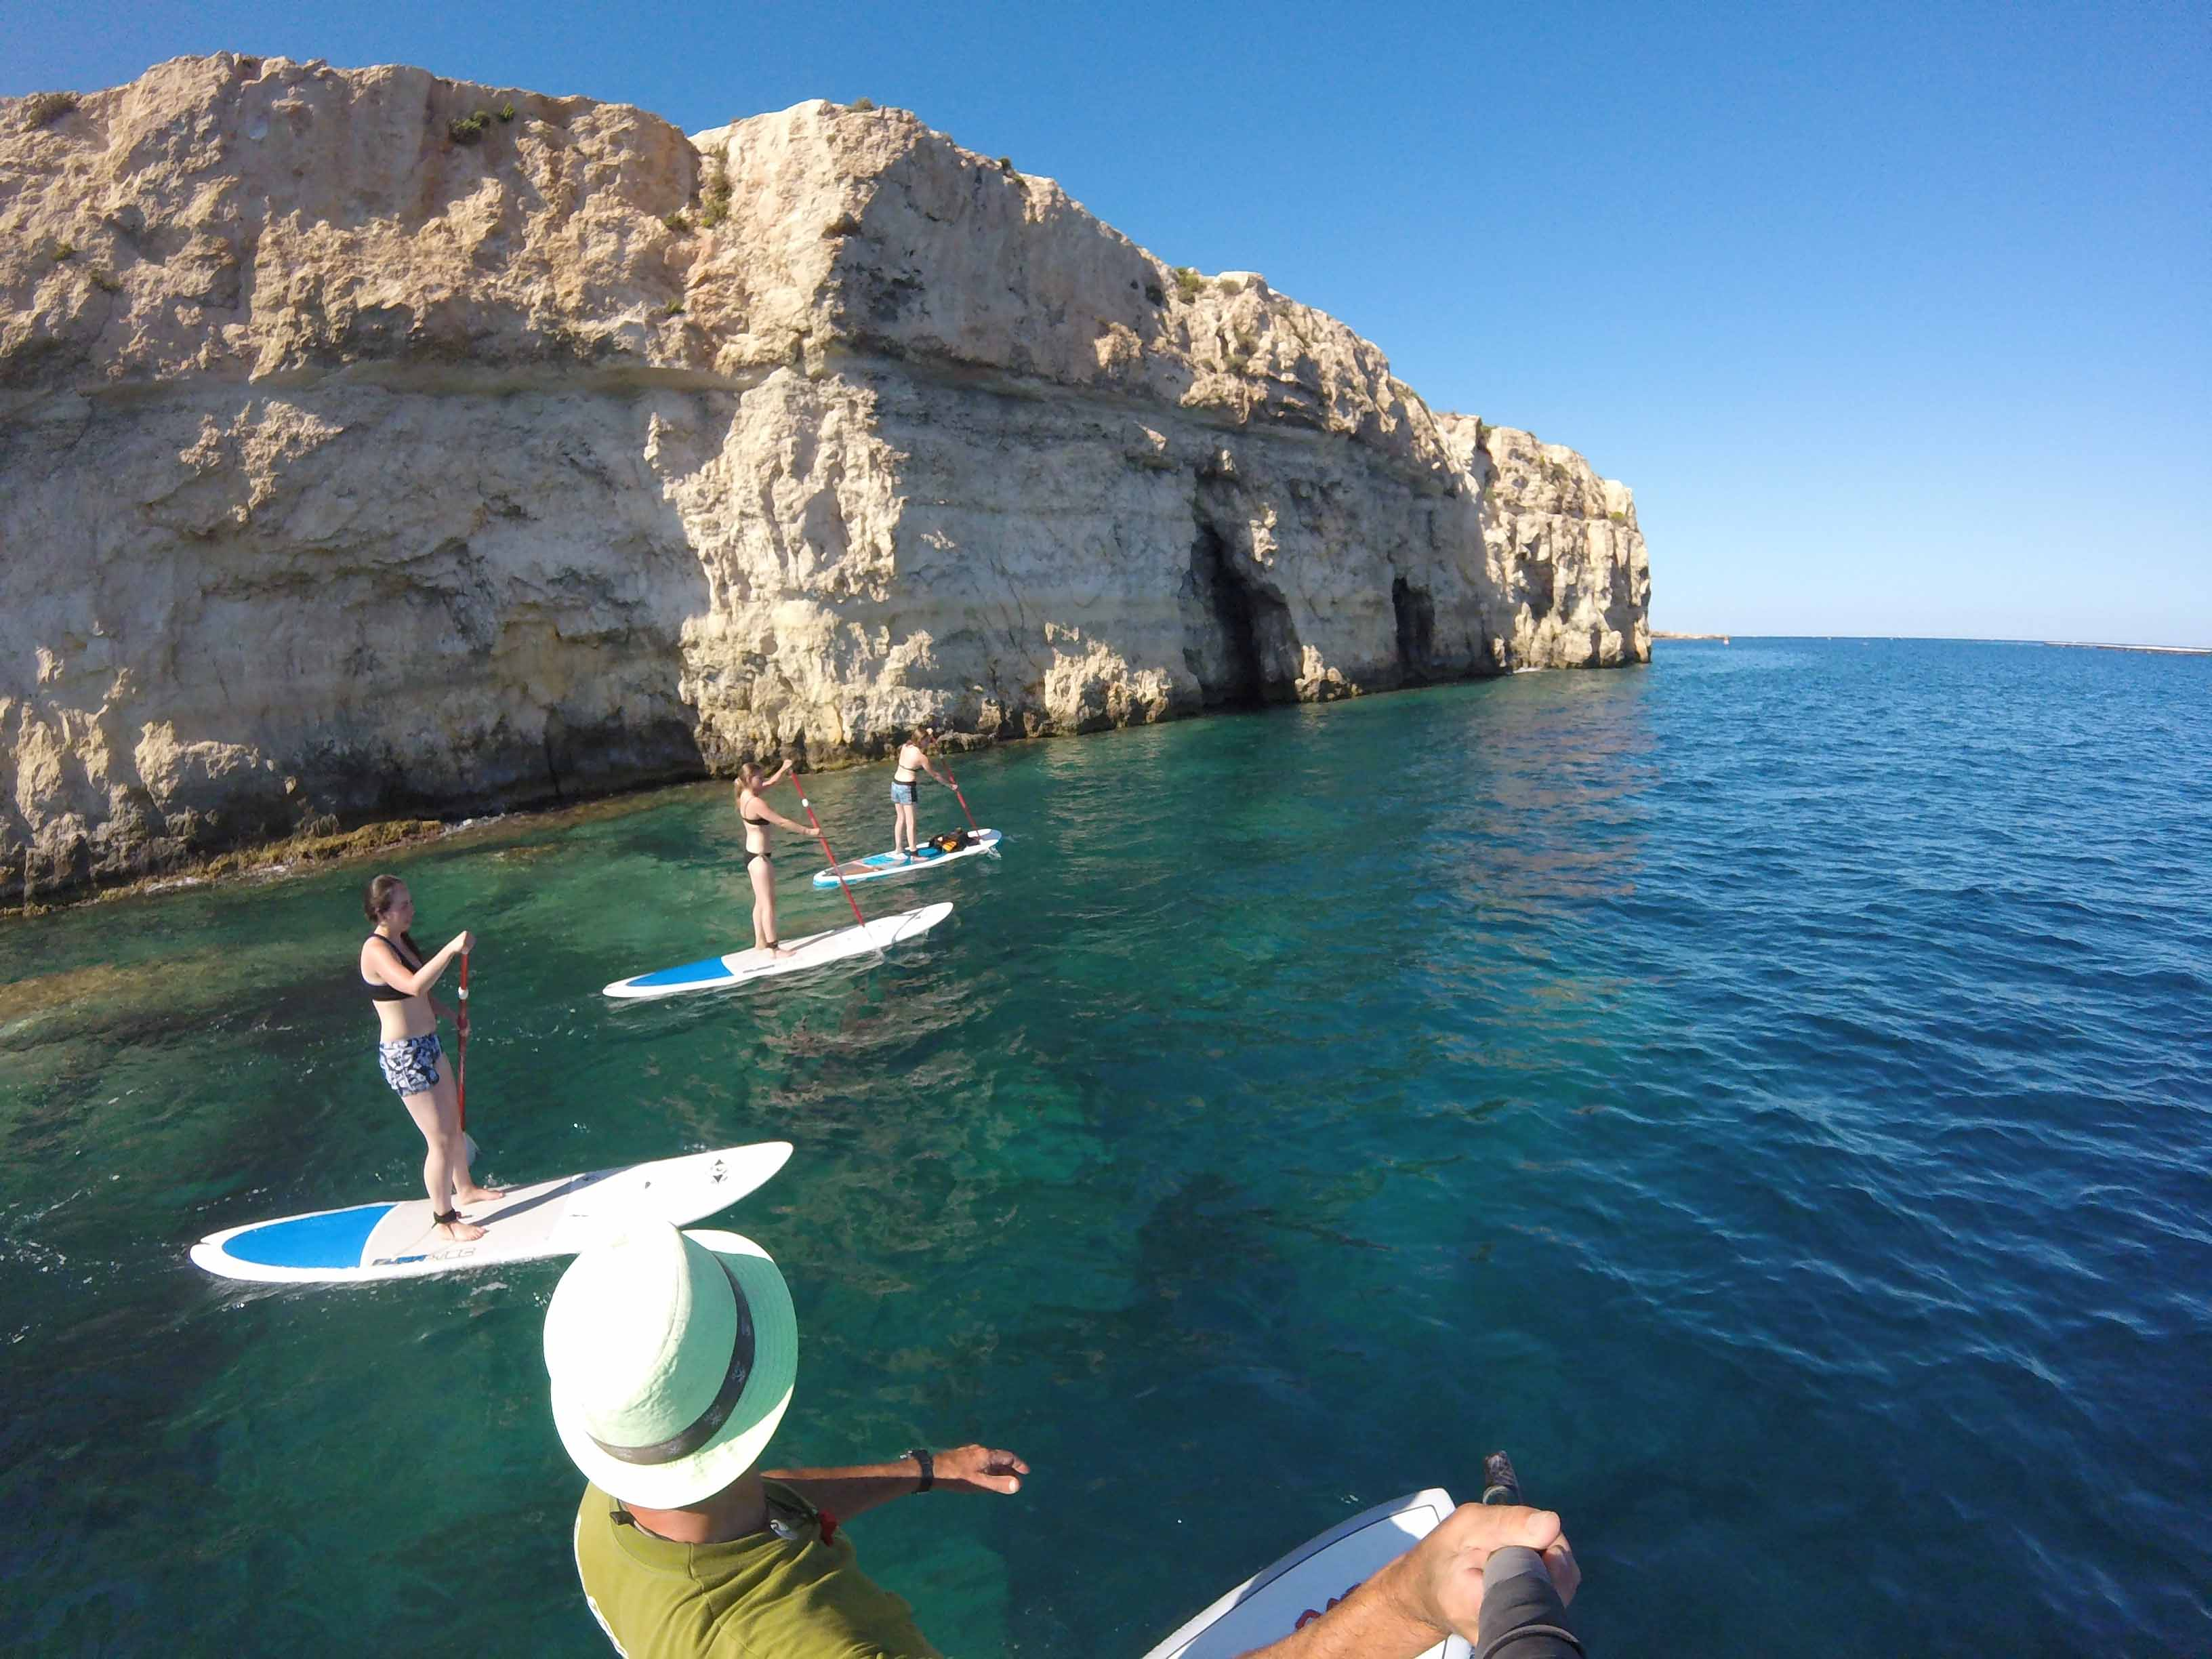 DCIM102GOPROsurfingmalta windsurfing school, Sup, Stand up paddle surfing, windsurfing lessons courses,  Malta , sup tours, Coral lagoon, Gnejna, Mellieha, Mscala, St Thomas bay